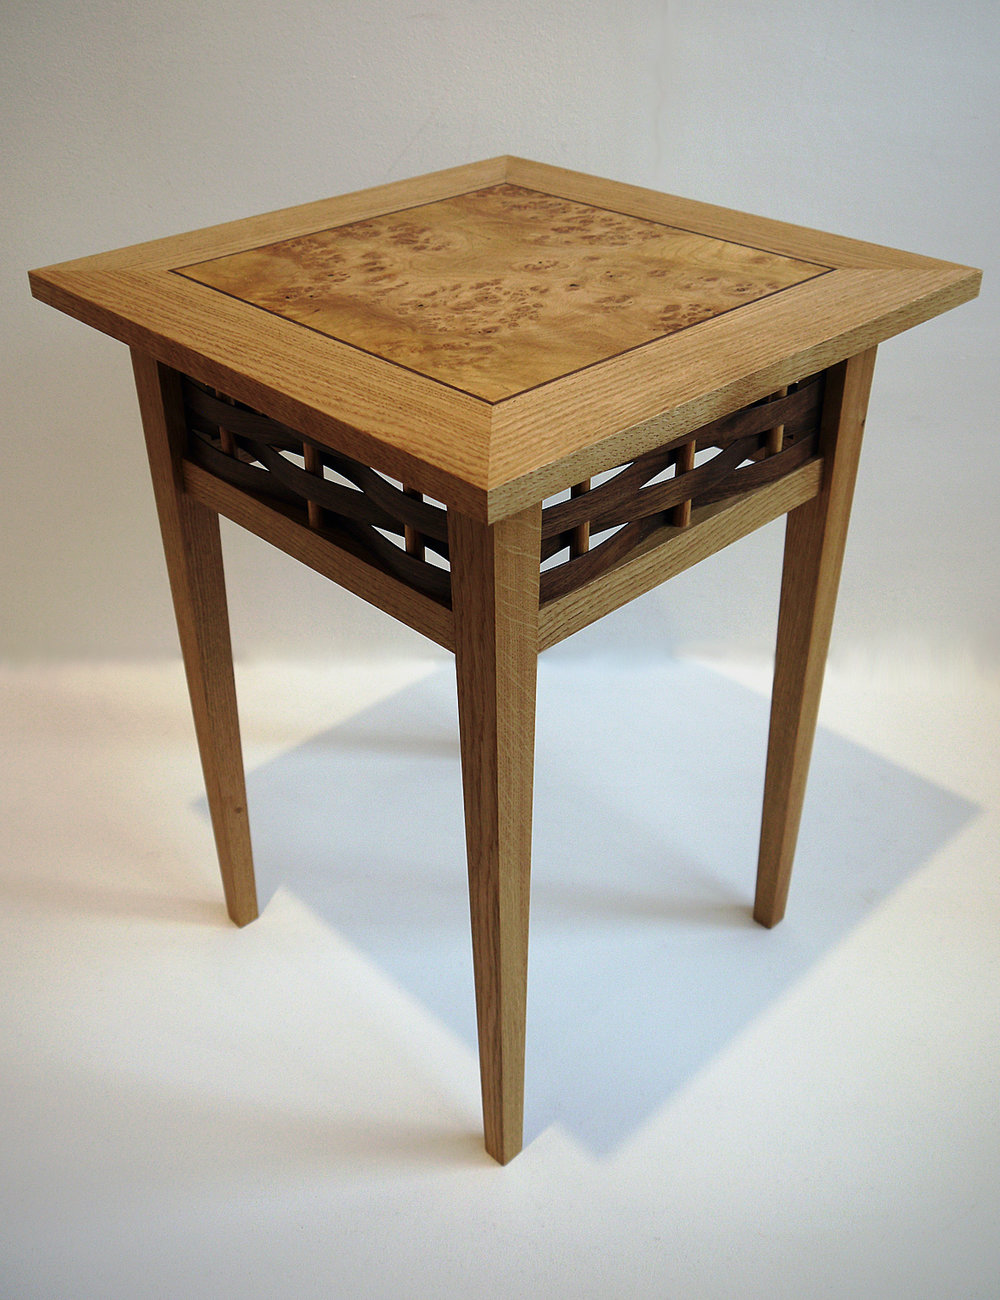 Watul side tables - Wattle, or watul in old English, hurdles date back over 6000 years and are fencing panels woven from coppiced round wood timber. I learned to construct them in the traditional way from my father and have now taken them as inspiration for my 'Watul' range of furniture.These four oak side tables, with different veneer tops, demonstrate the subtle variations that are possible when commissioning me and how they can change the style of a piece. I am always happy to guide you through these options to create the perfect piece for you to own and treasure for years to come.Dimensions: Height 45cm, width 60cm, depth 60cm Price: £950